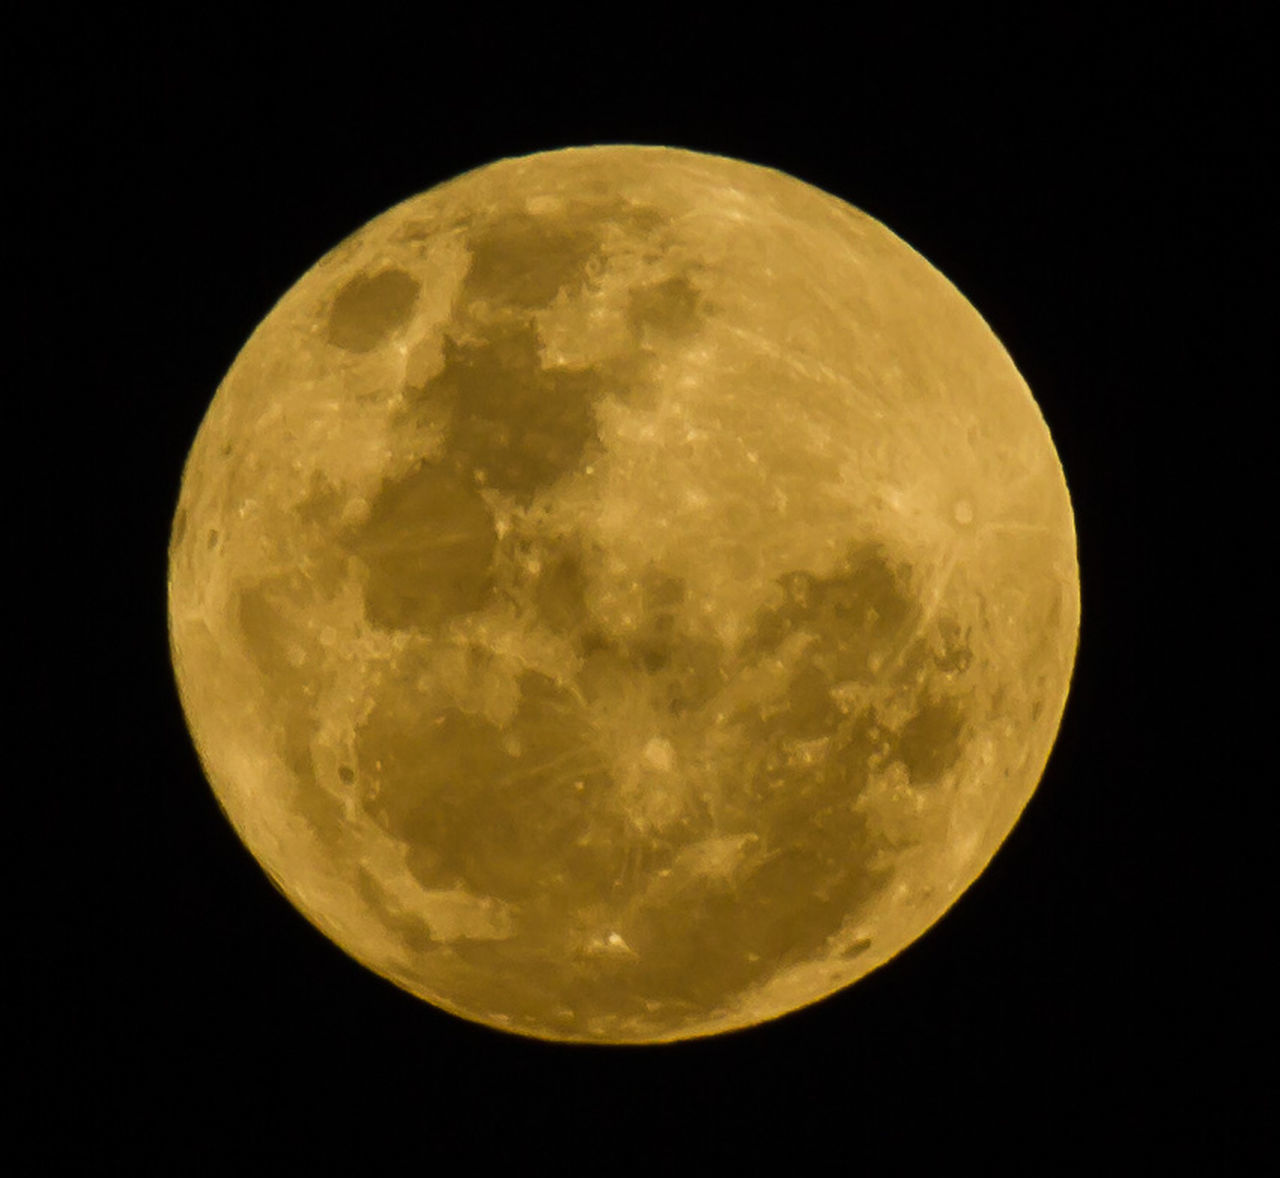 Astronomy Beauty In Nature Black Background Full Moon Moon Moon Surface Nature Night No People Outdoors Planetary Moon Science Sky Space Superman Supermoon Yellow